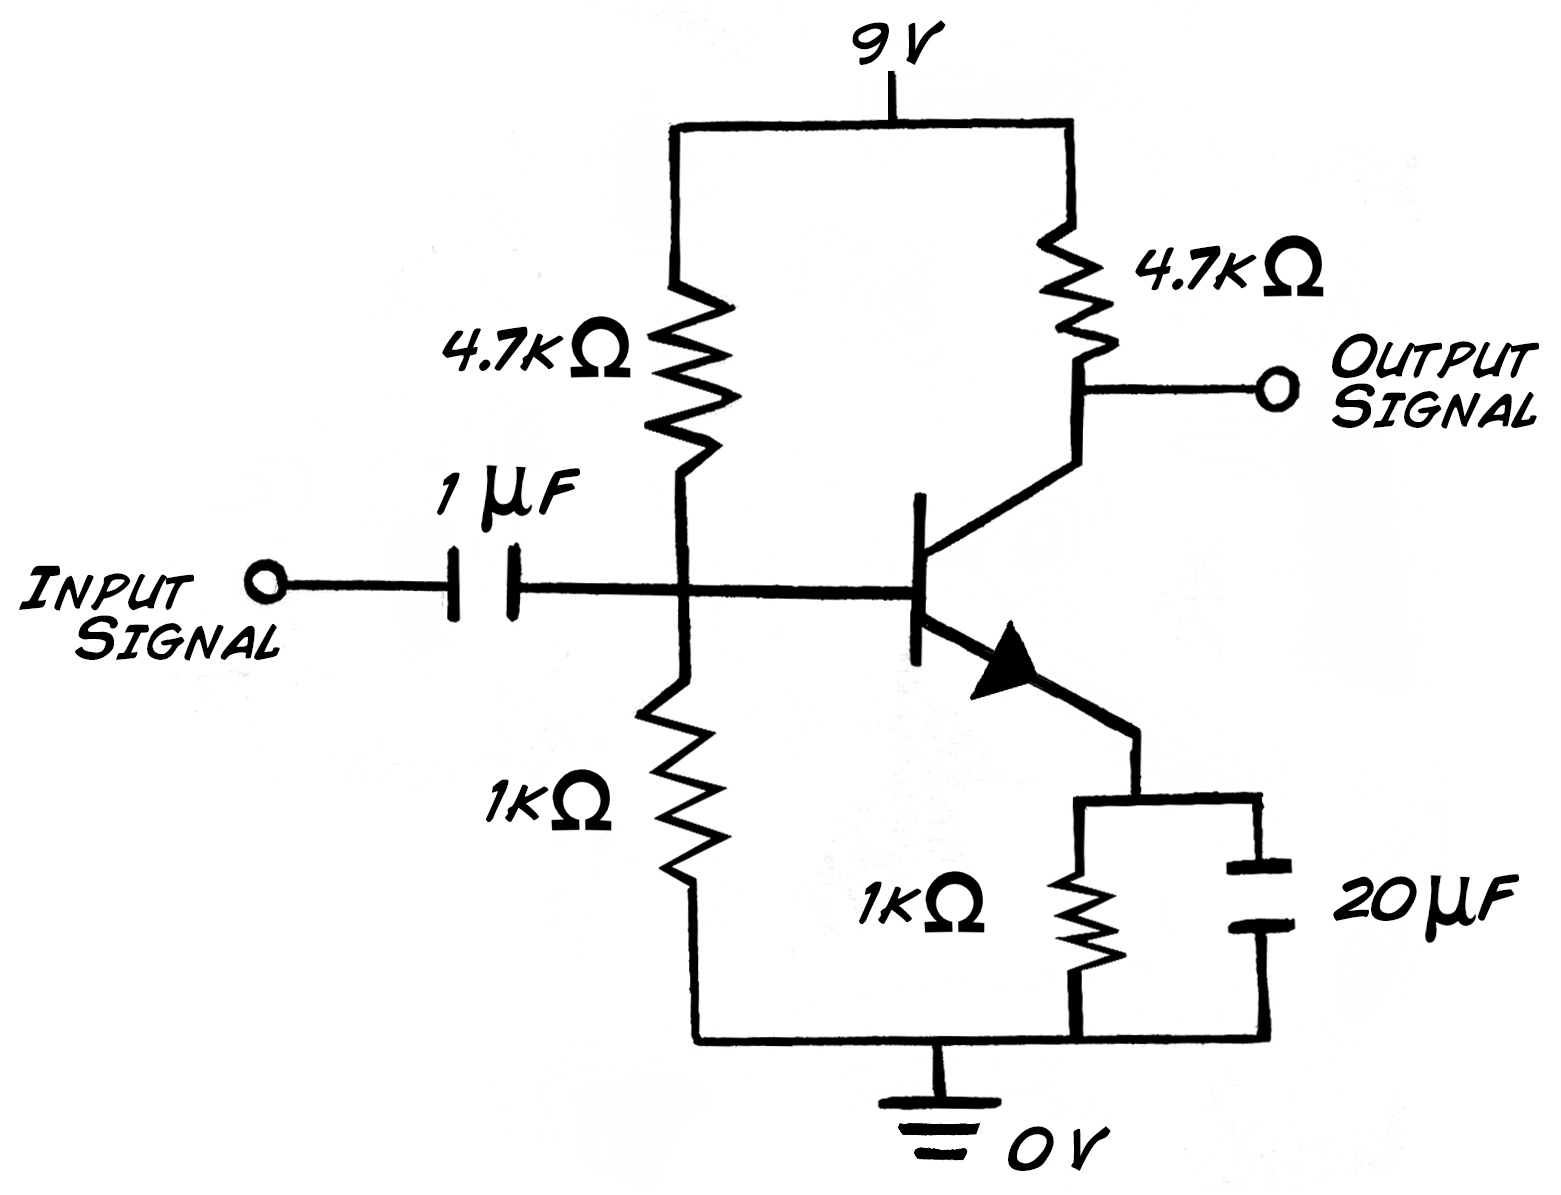 Experiment Transistor Circuit Design Schematics Wiring Diagram Circuits Schema Electronic Projects